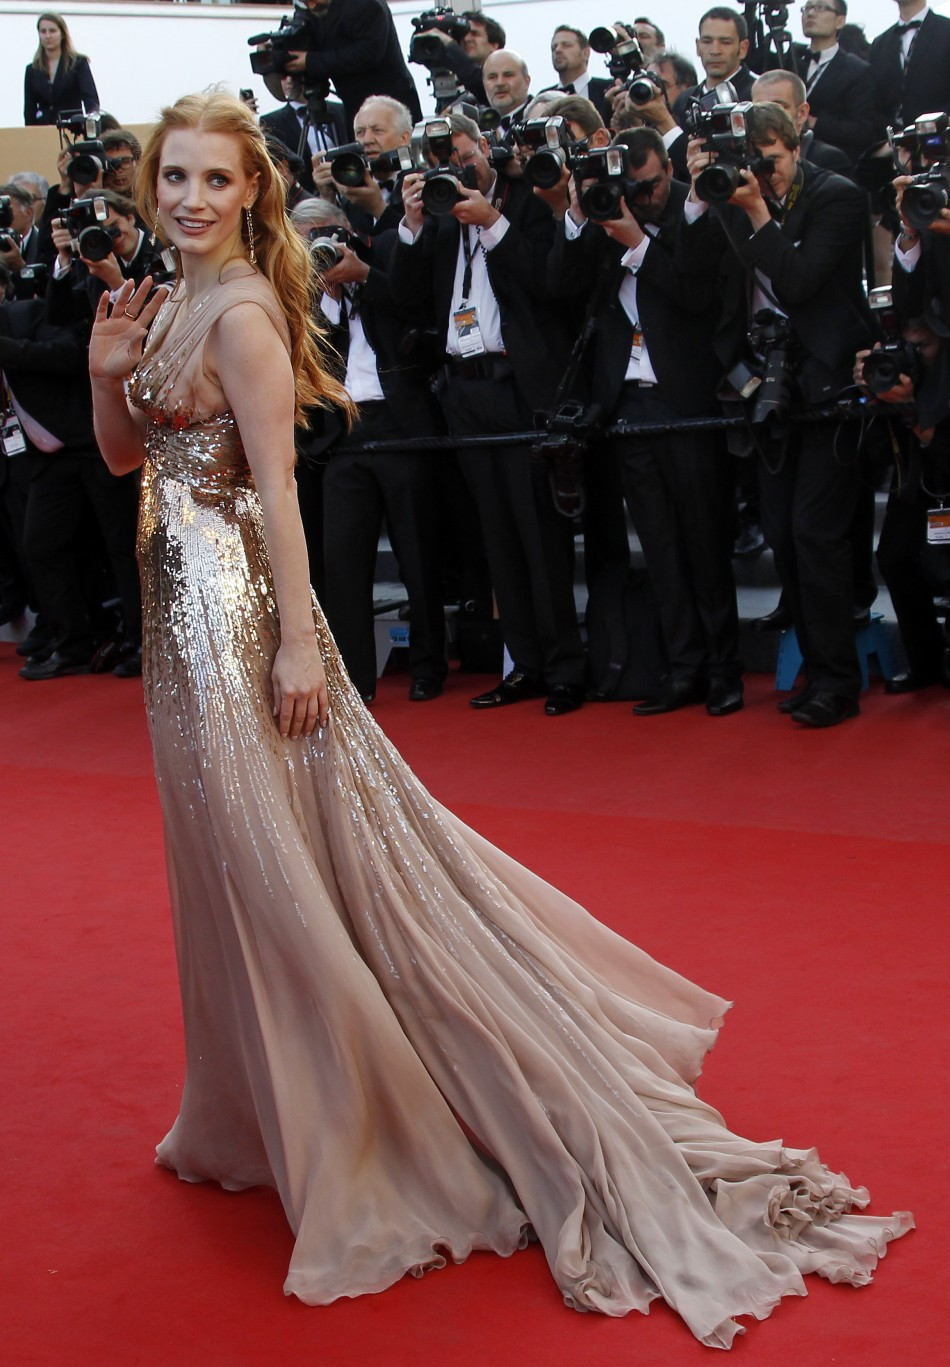 Cast member Chastain arrives on the red carpet for the screening of the film Lawless at the 65th Cannes Film Festival